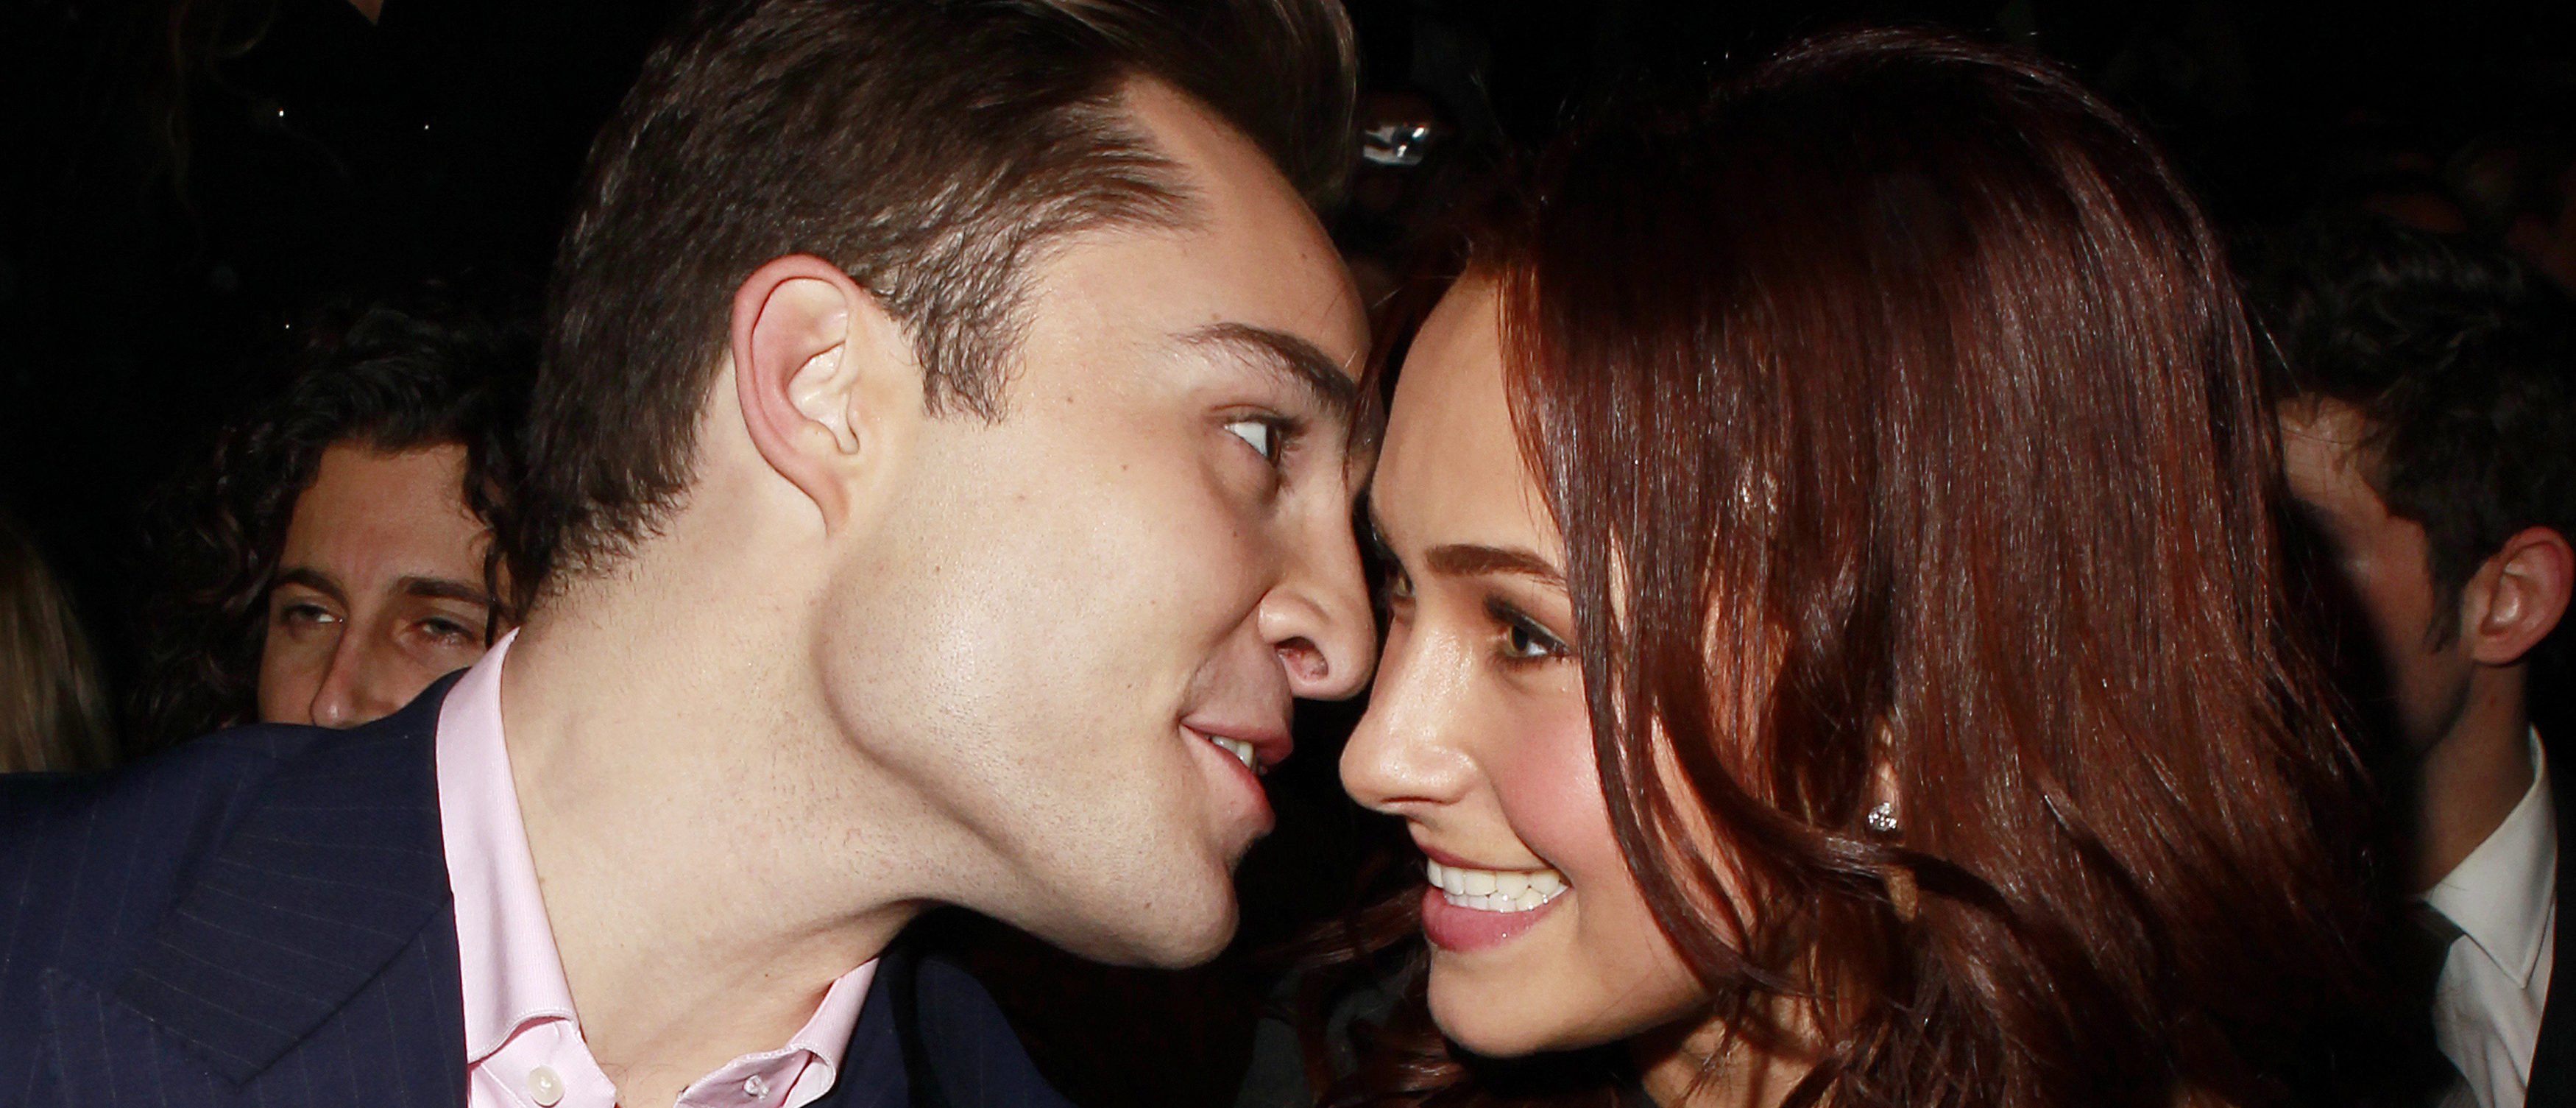 Actor Ed Westwick (L) chats with actress Hayden Panettiere on the front row of the Tommy Hilfiger Fall 2010 collection during New York Fashion Week February 18, 2010. (Photo: REUTERS/Carlo Allegri)